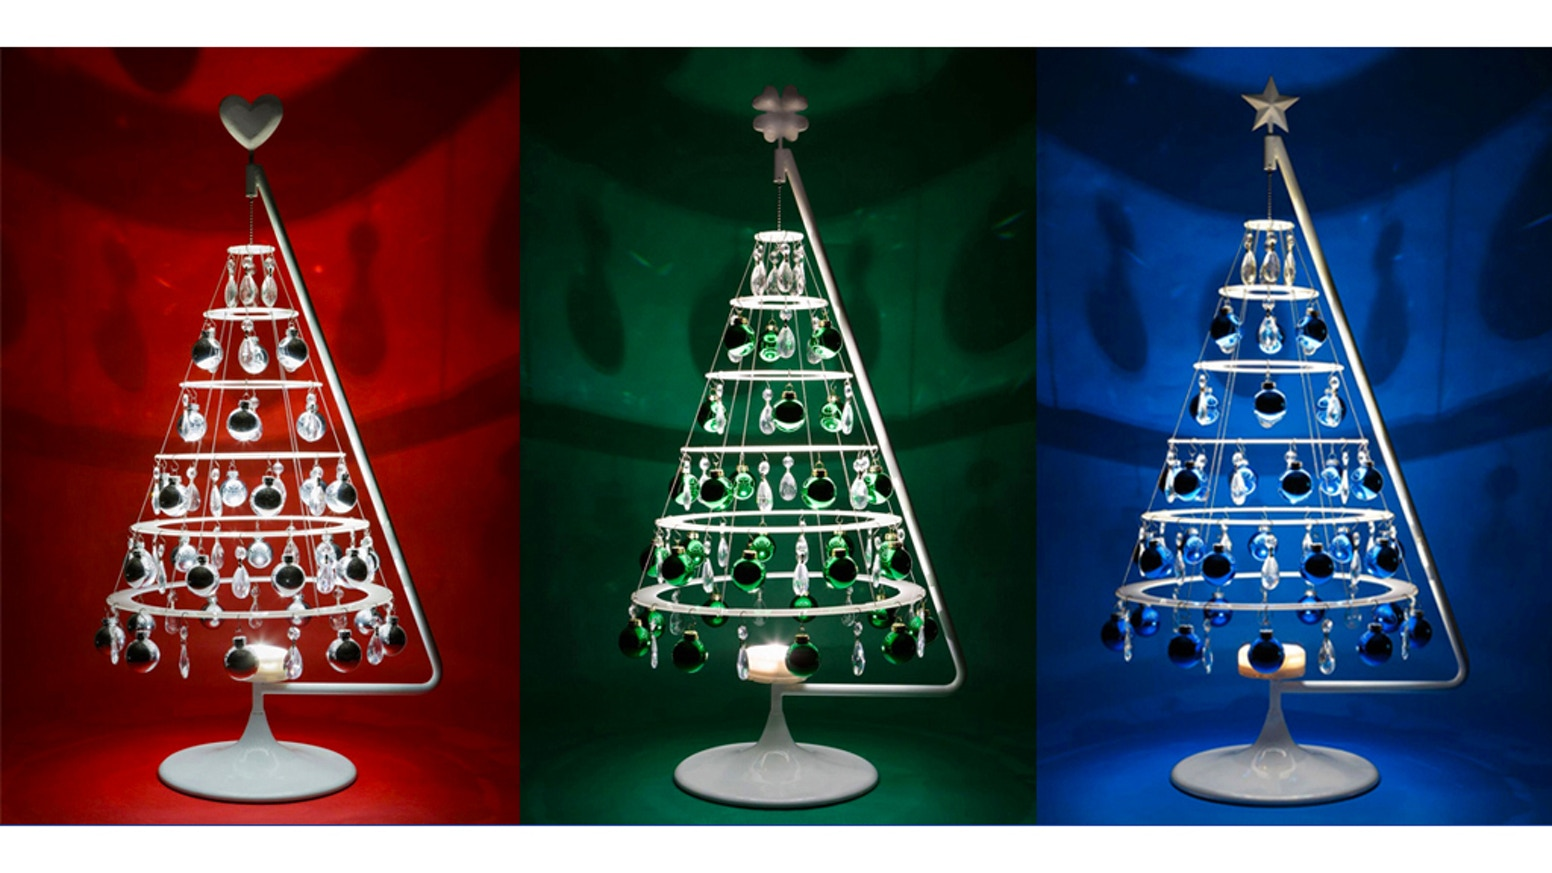 The Jubilee From Modern Christmas Trees Transforms Every Space Into A  Visual Celebration With Its